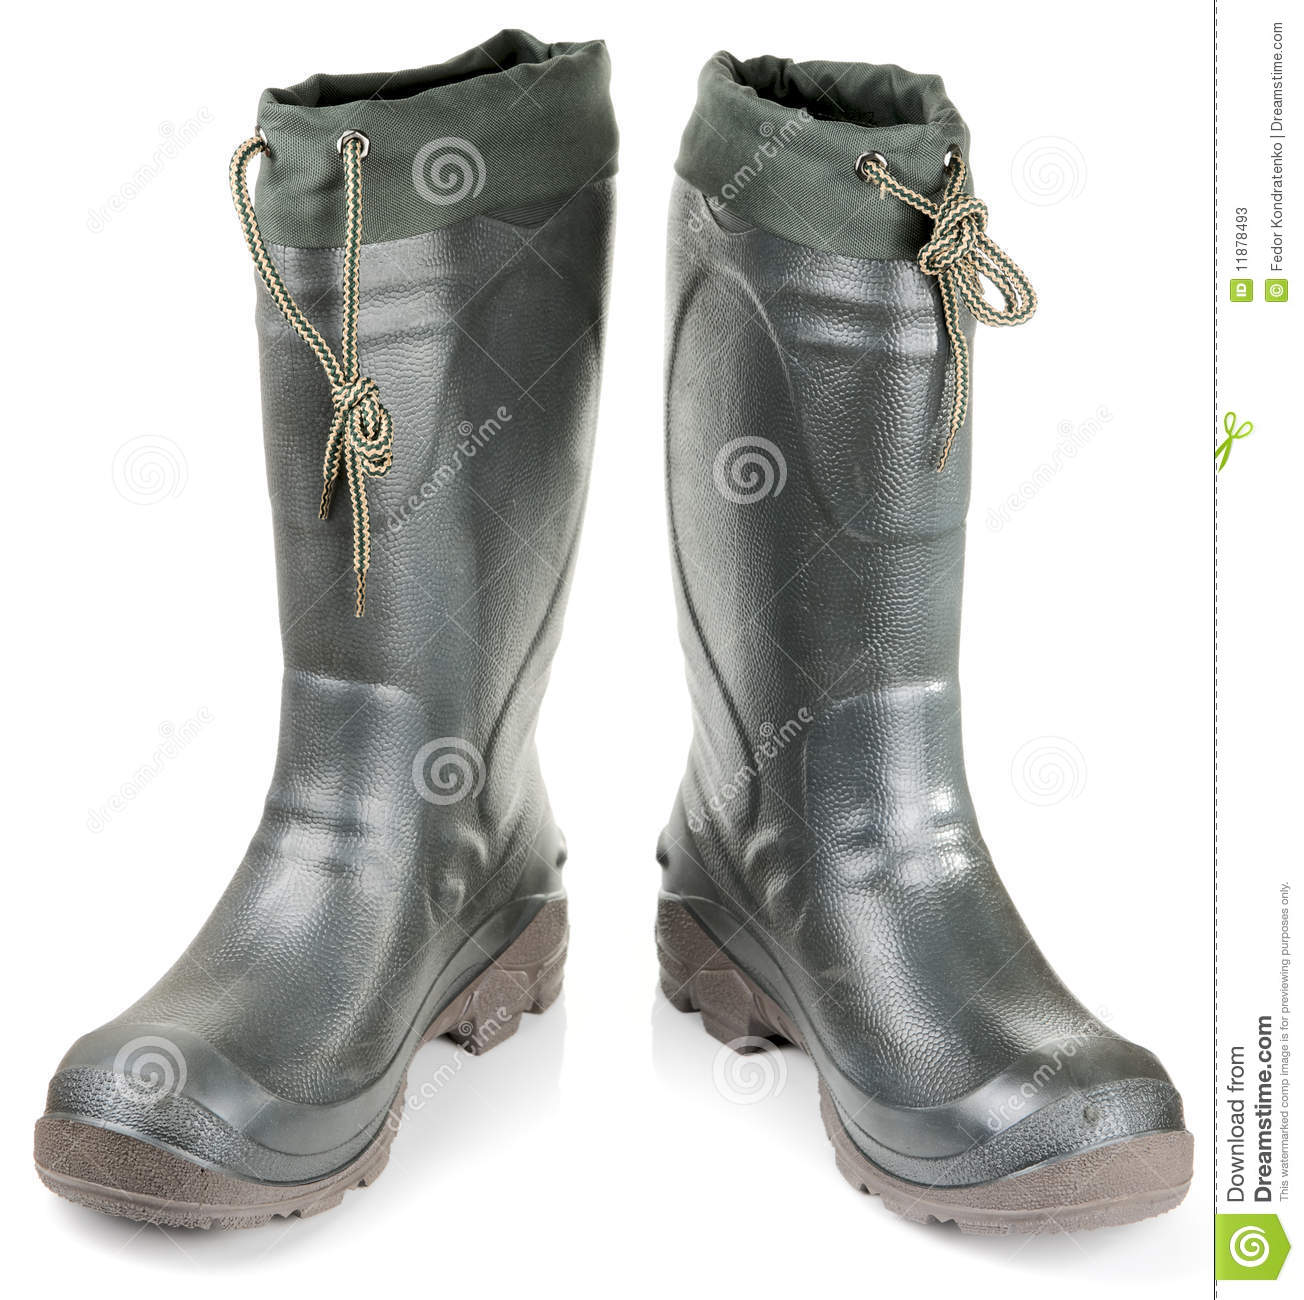 Pair of warm rubber fishing shoes stock photos image for Rubber fishing boots